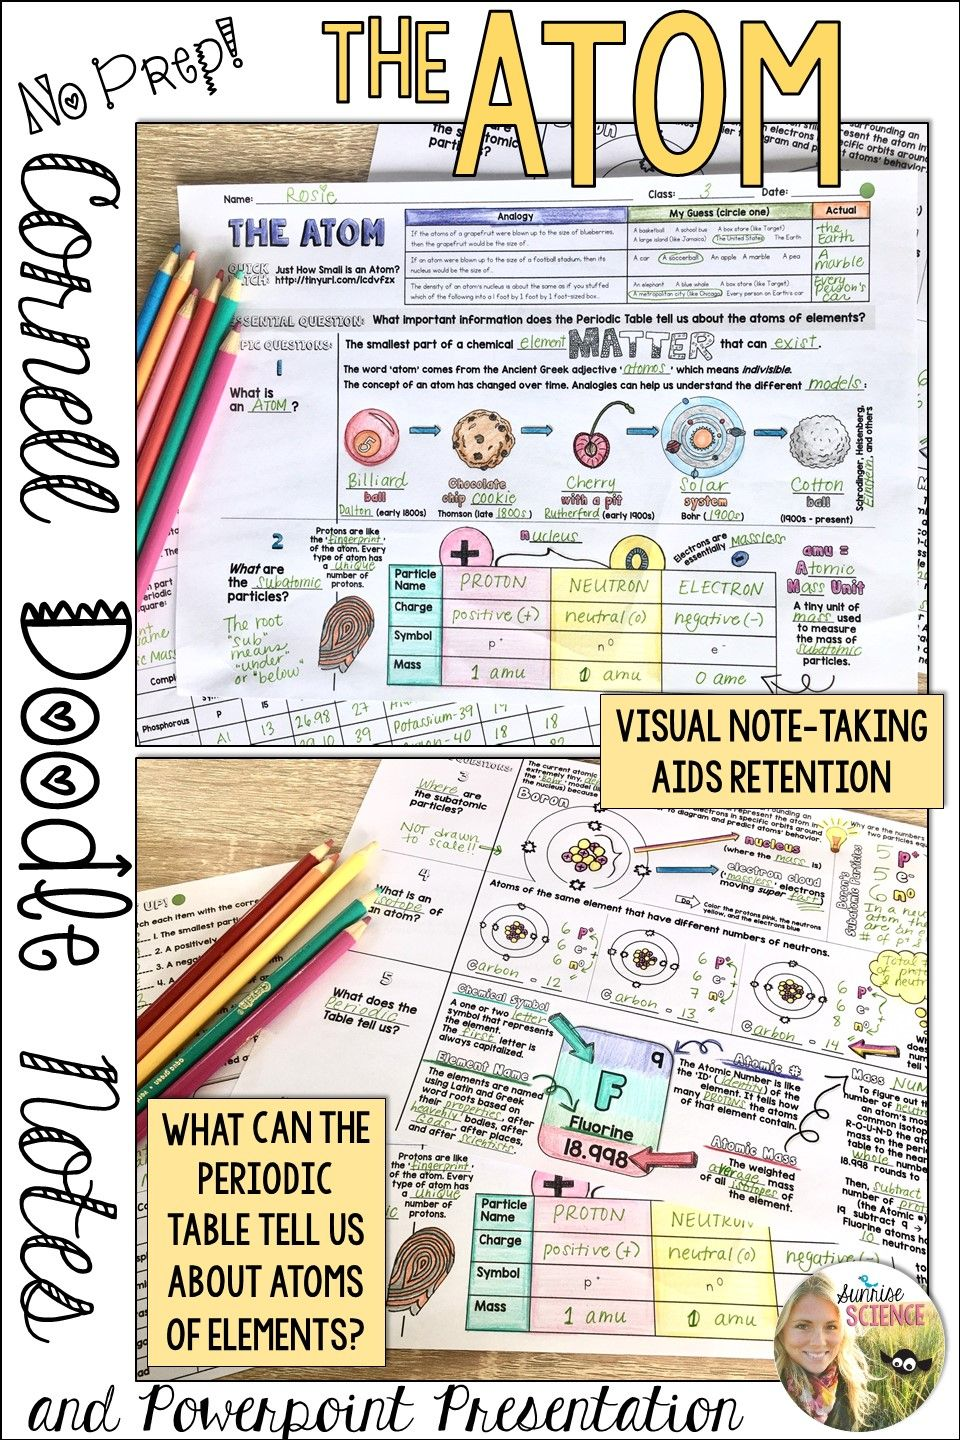 Atoms and reading the periodic table cornell doodle notes tpt an introduction to the atom and the subatomic particles using two effective note taking strategies urtaz Image collections